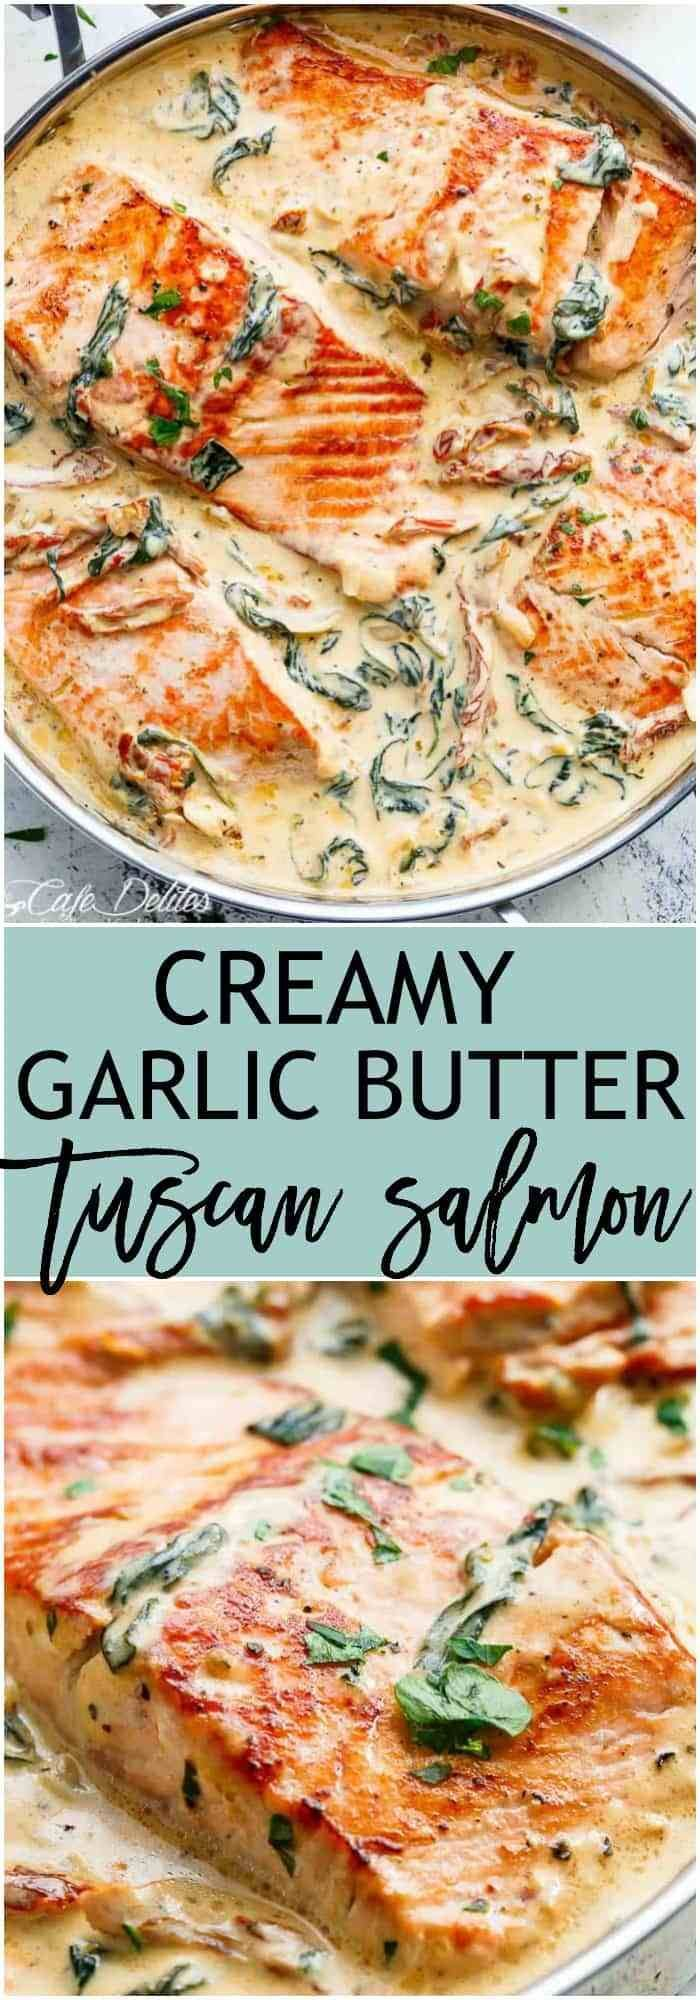 Creamy Garlic Butter Tuscan Salmon Creamy Garlic Butter